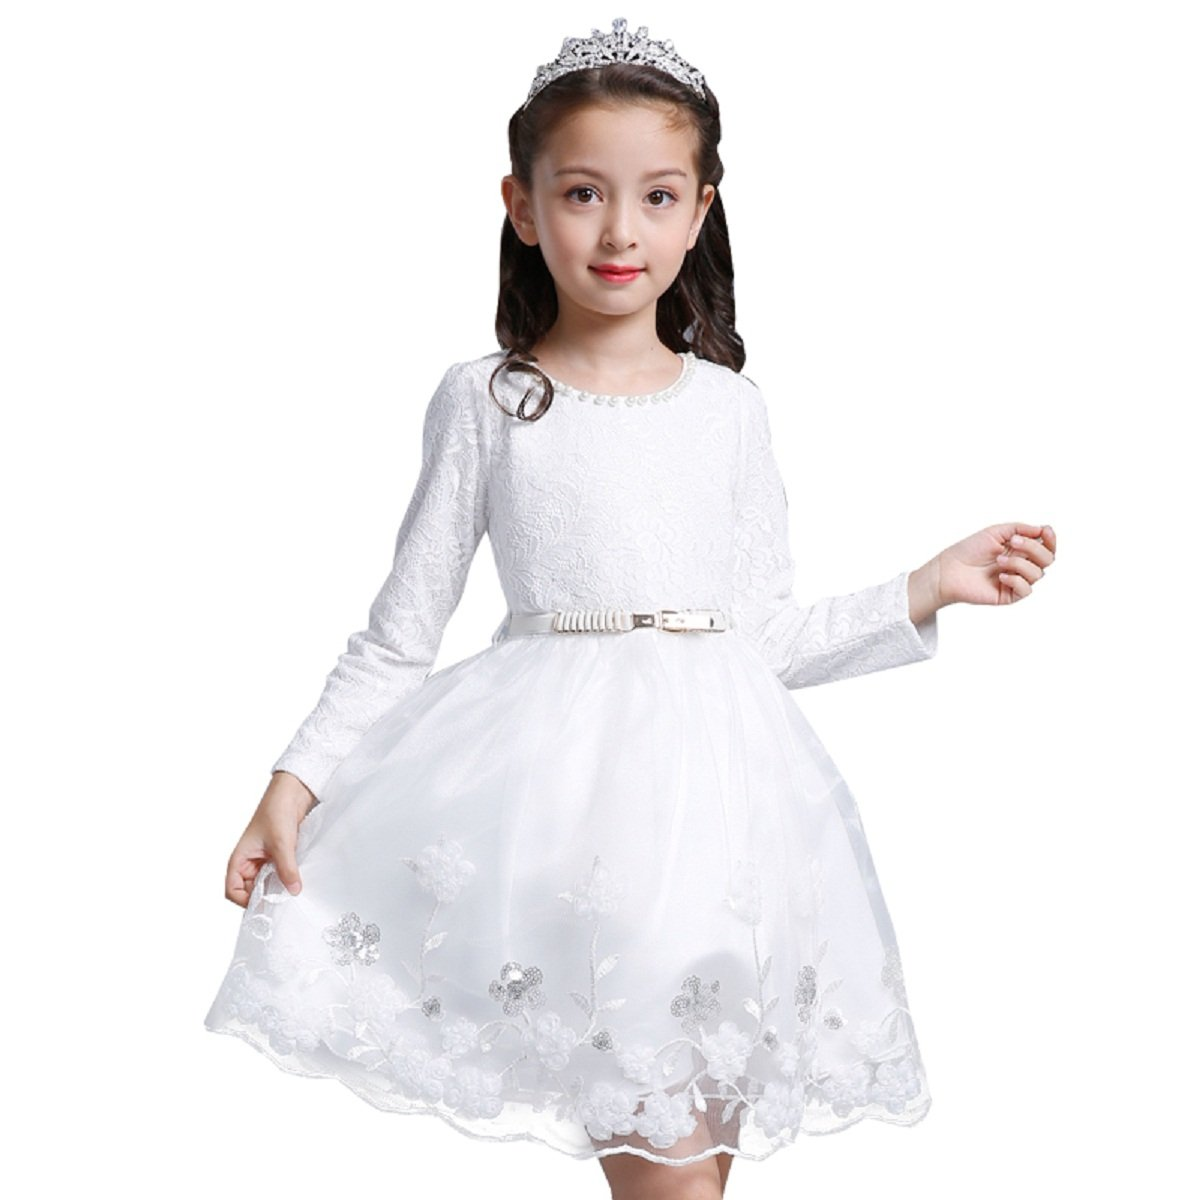 c777b3dd7 ... Frabric: Cotton/Lace Organza Blending, made This flower Girl Princess  Dresses Very Soft , comfortable, have Good Breathability and Drapeability.